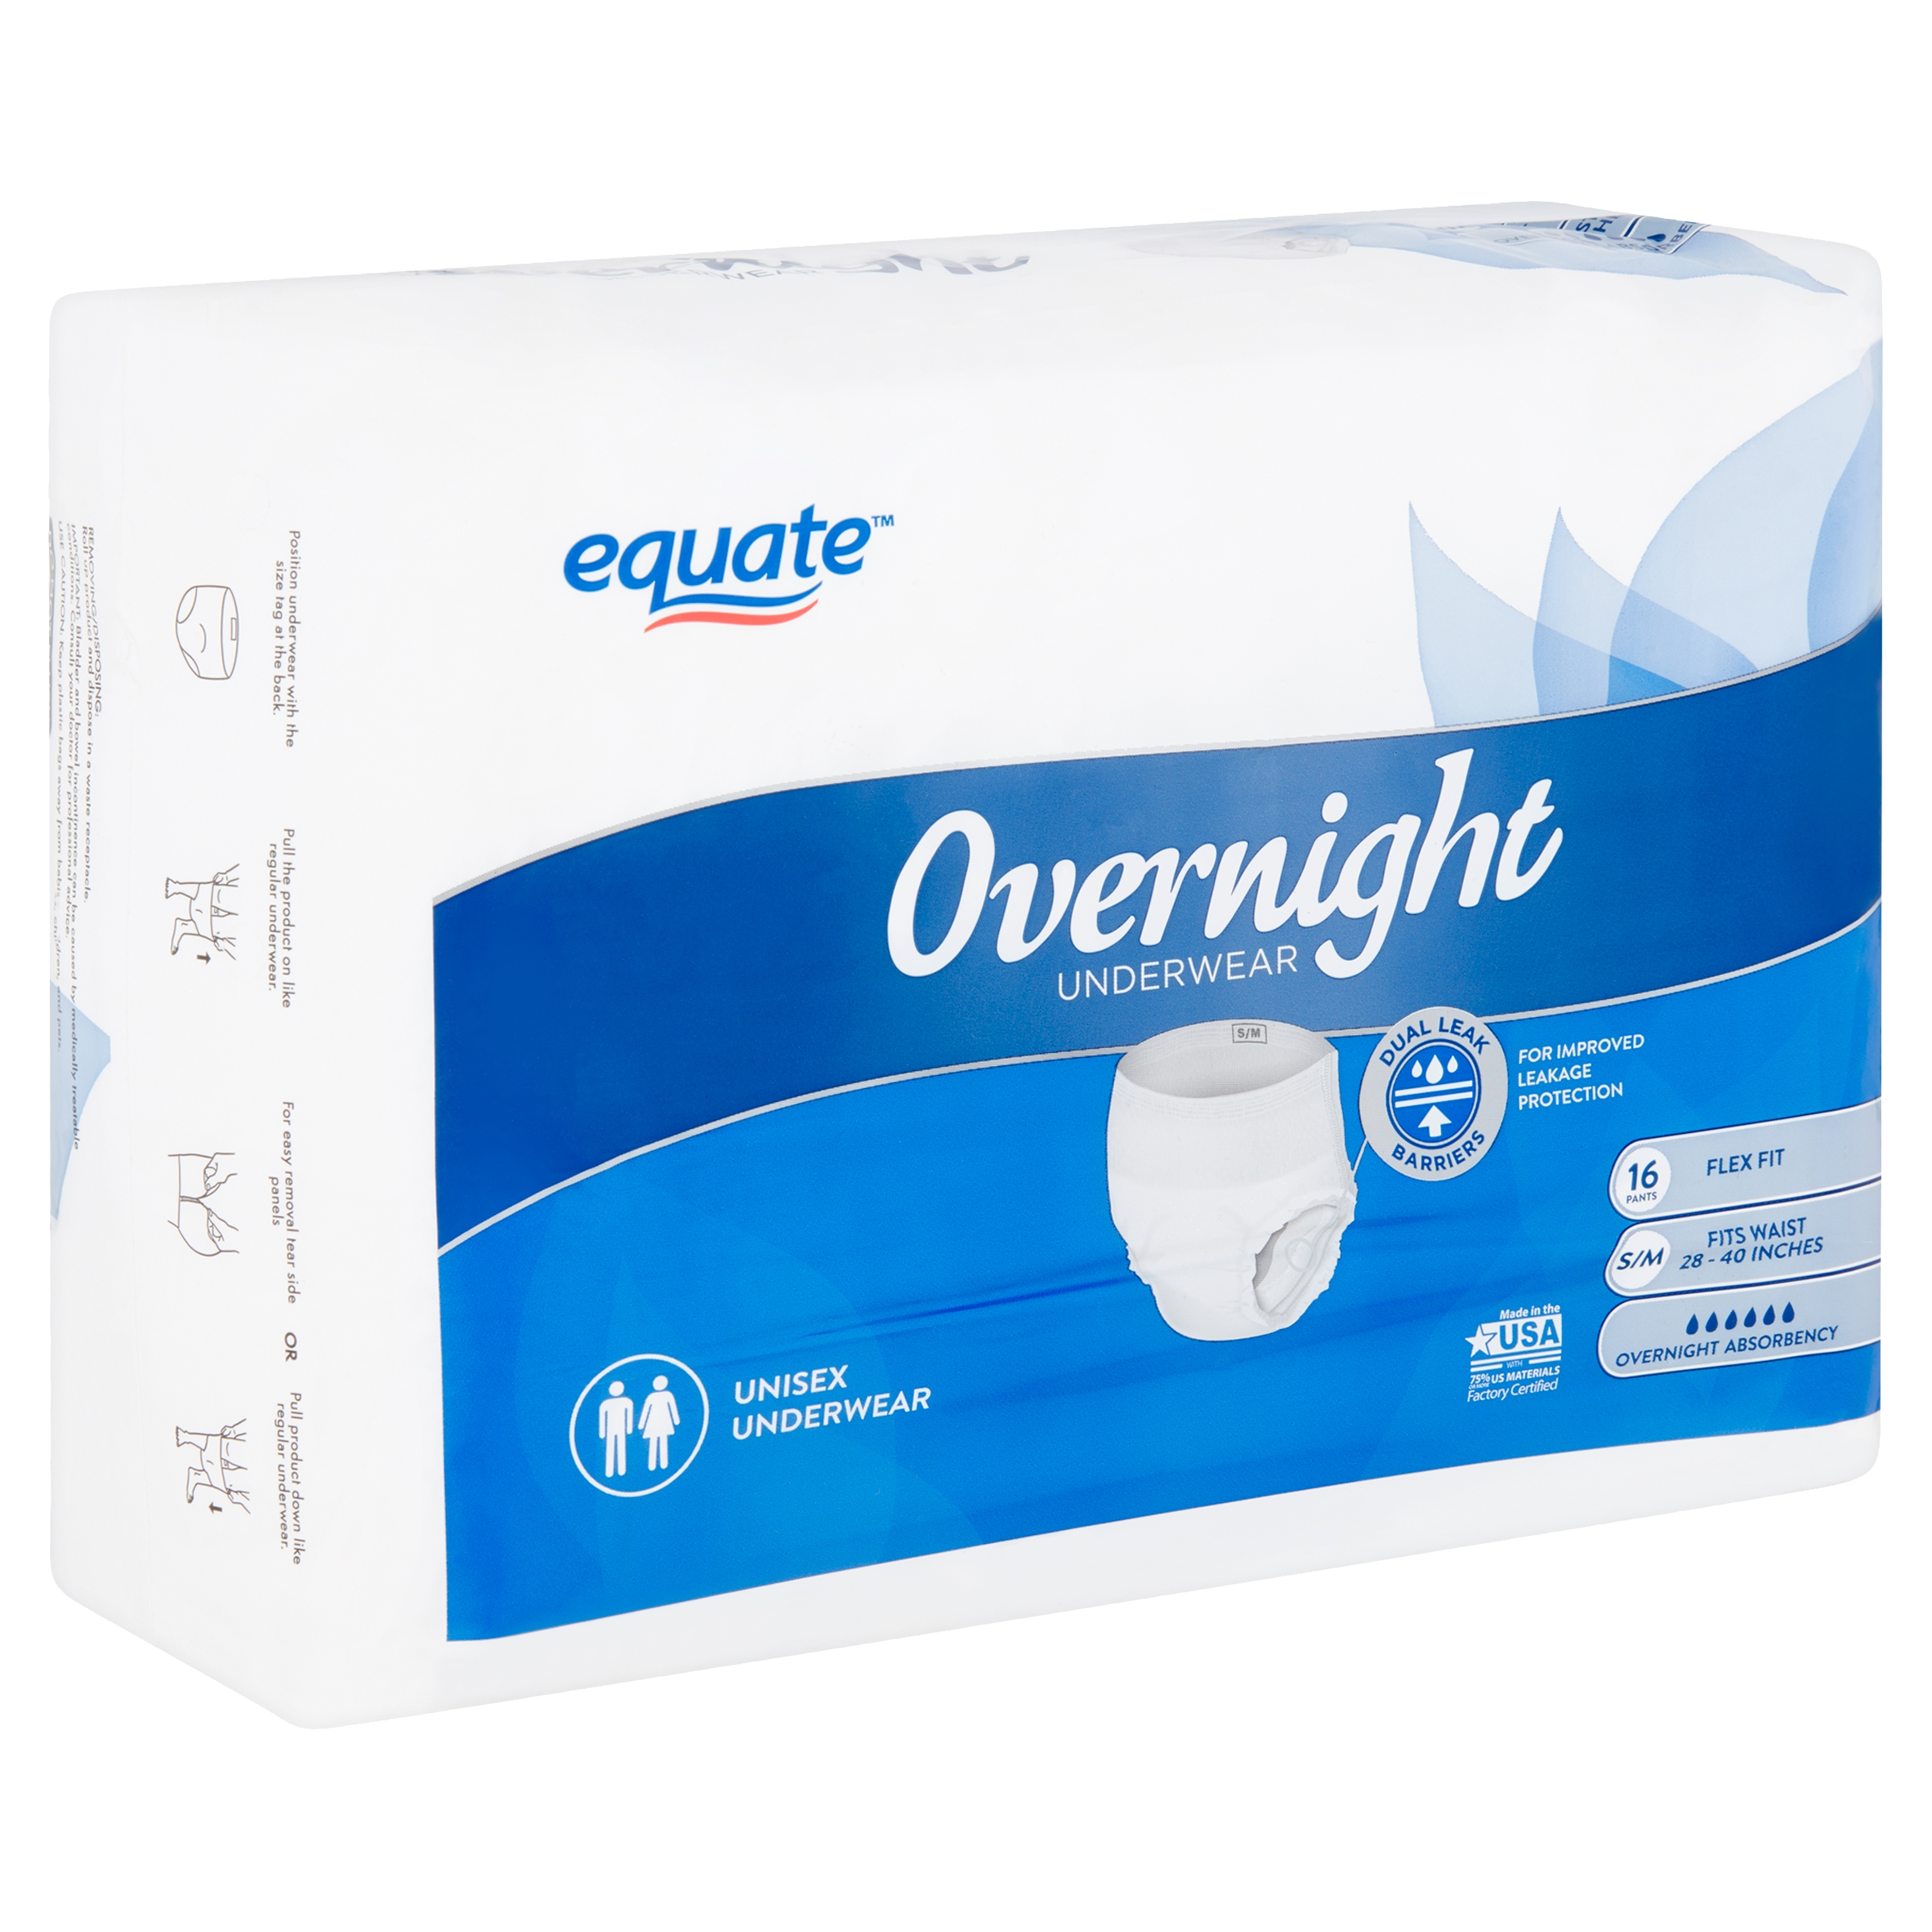 Equate Overnight Absorbency Unisex Underwear, S/M, 16 count